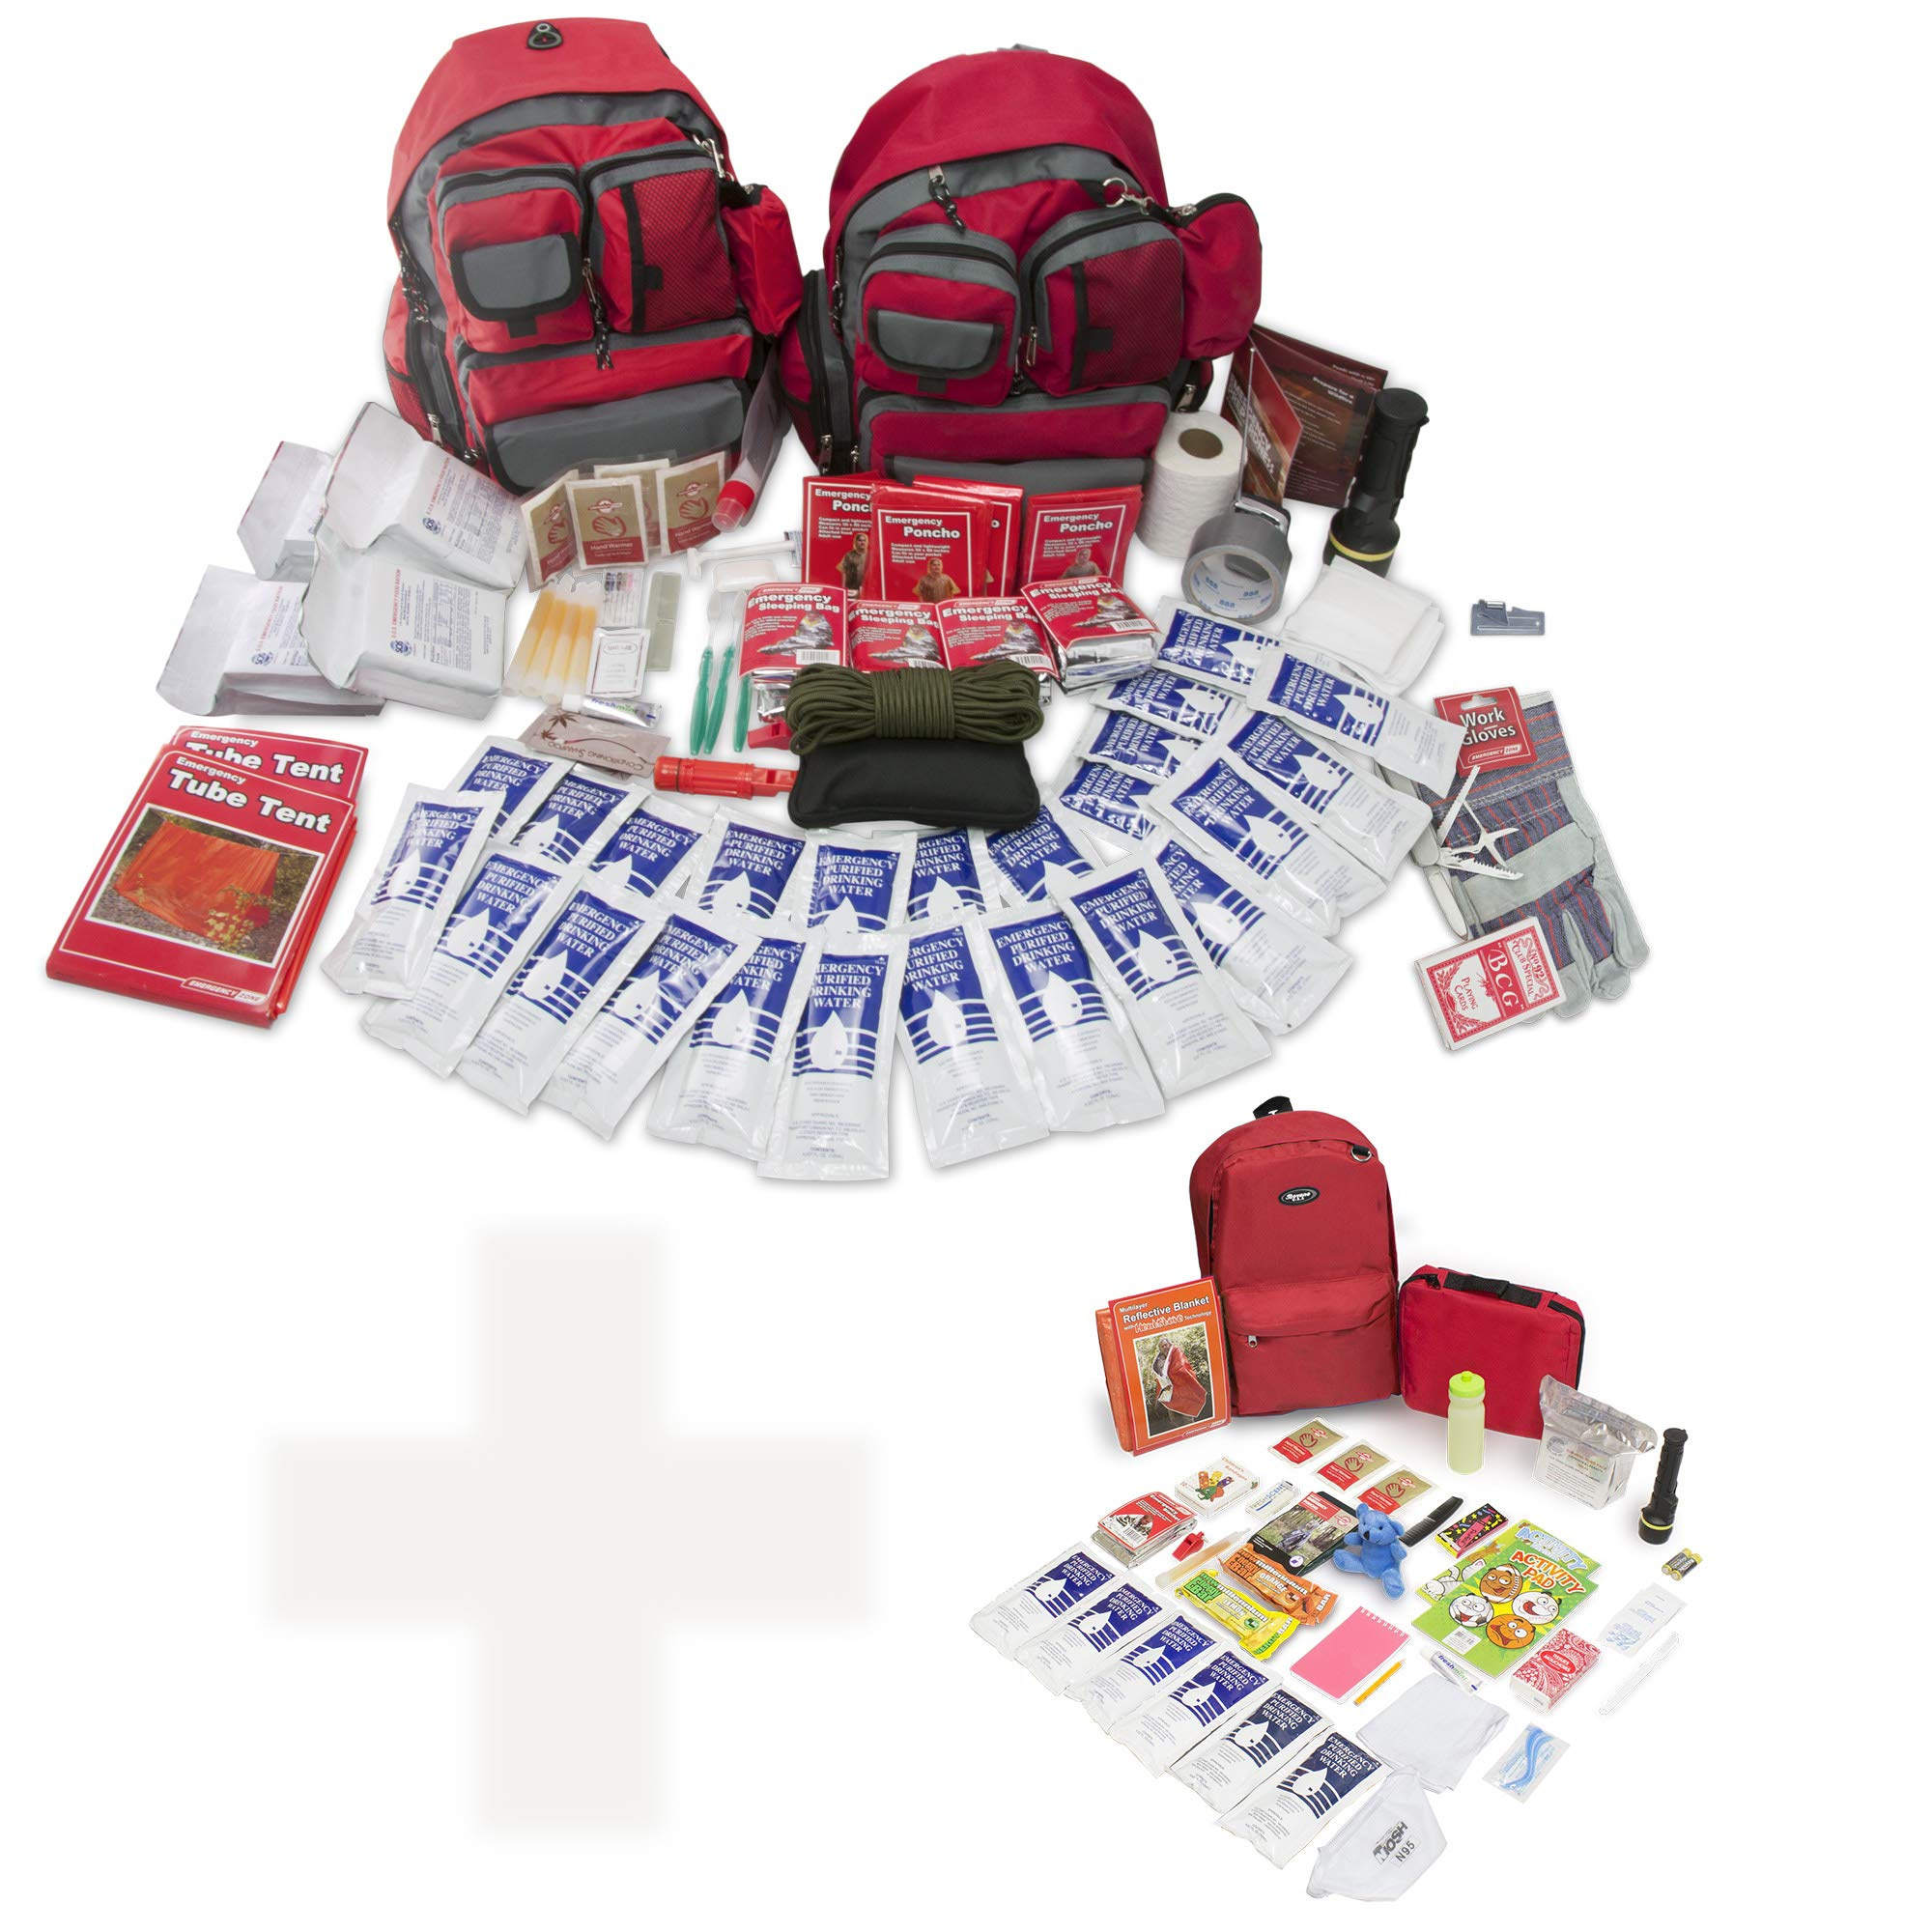 Bundle & Save | Emergency Zone 4 Person Family Prep 72 Hour Survival Kit + Deluxe Child Emergency Go Bag | Perfect Way to Prepare Your Family | Be Ready for Disasters like Hurricanes & Earthquakes by Emergency Zone (Image #1)